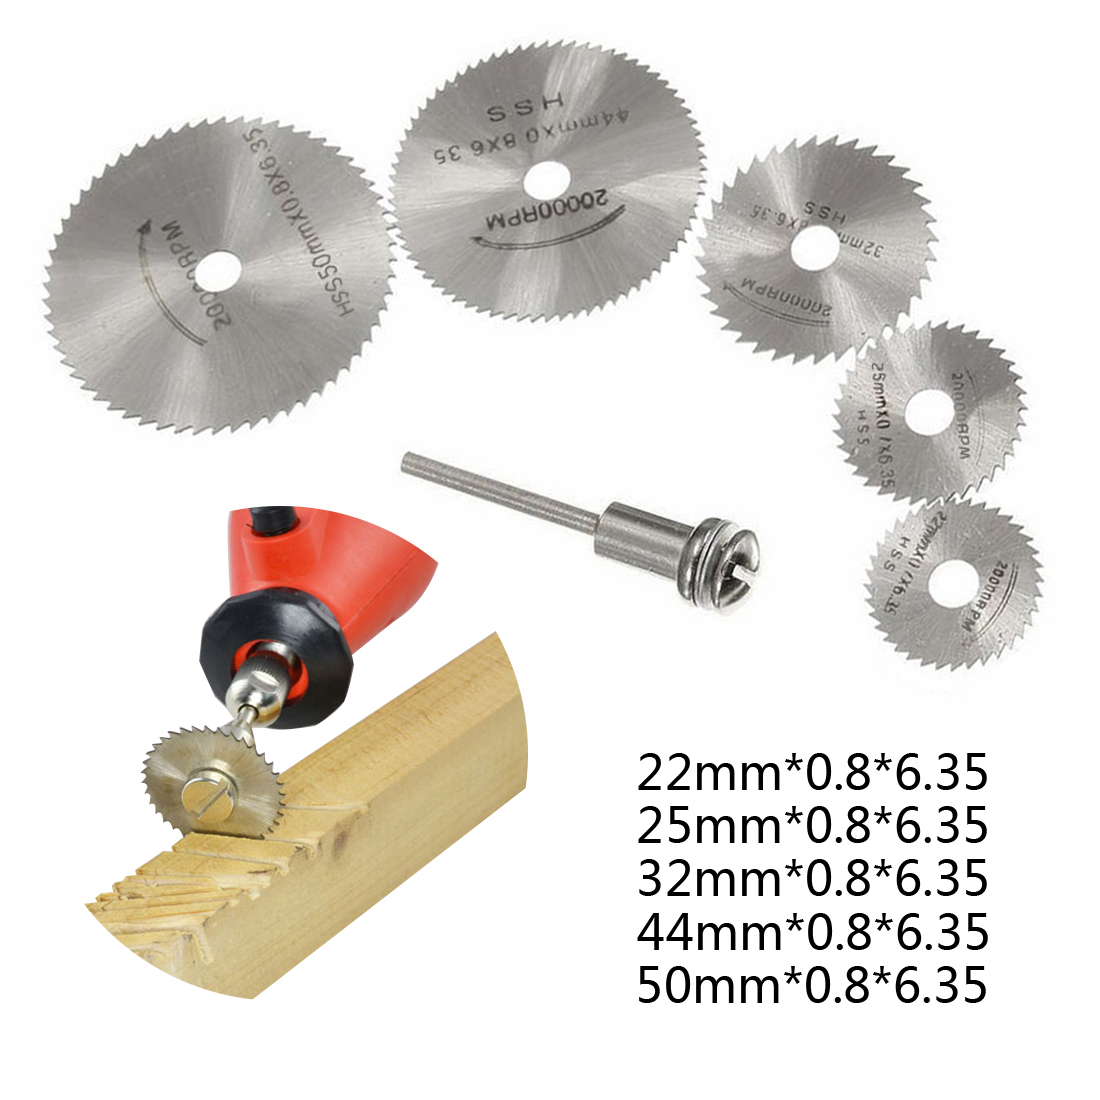 Mini HSS Circular Saw Blade Jig Saw Rotary Tool For Dremel Metal Cutter Power Tool Set Wood Cutting Discs Drill Mandrel